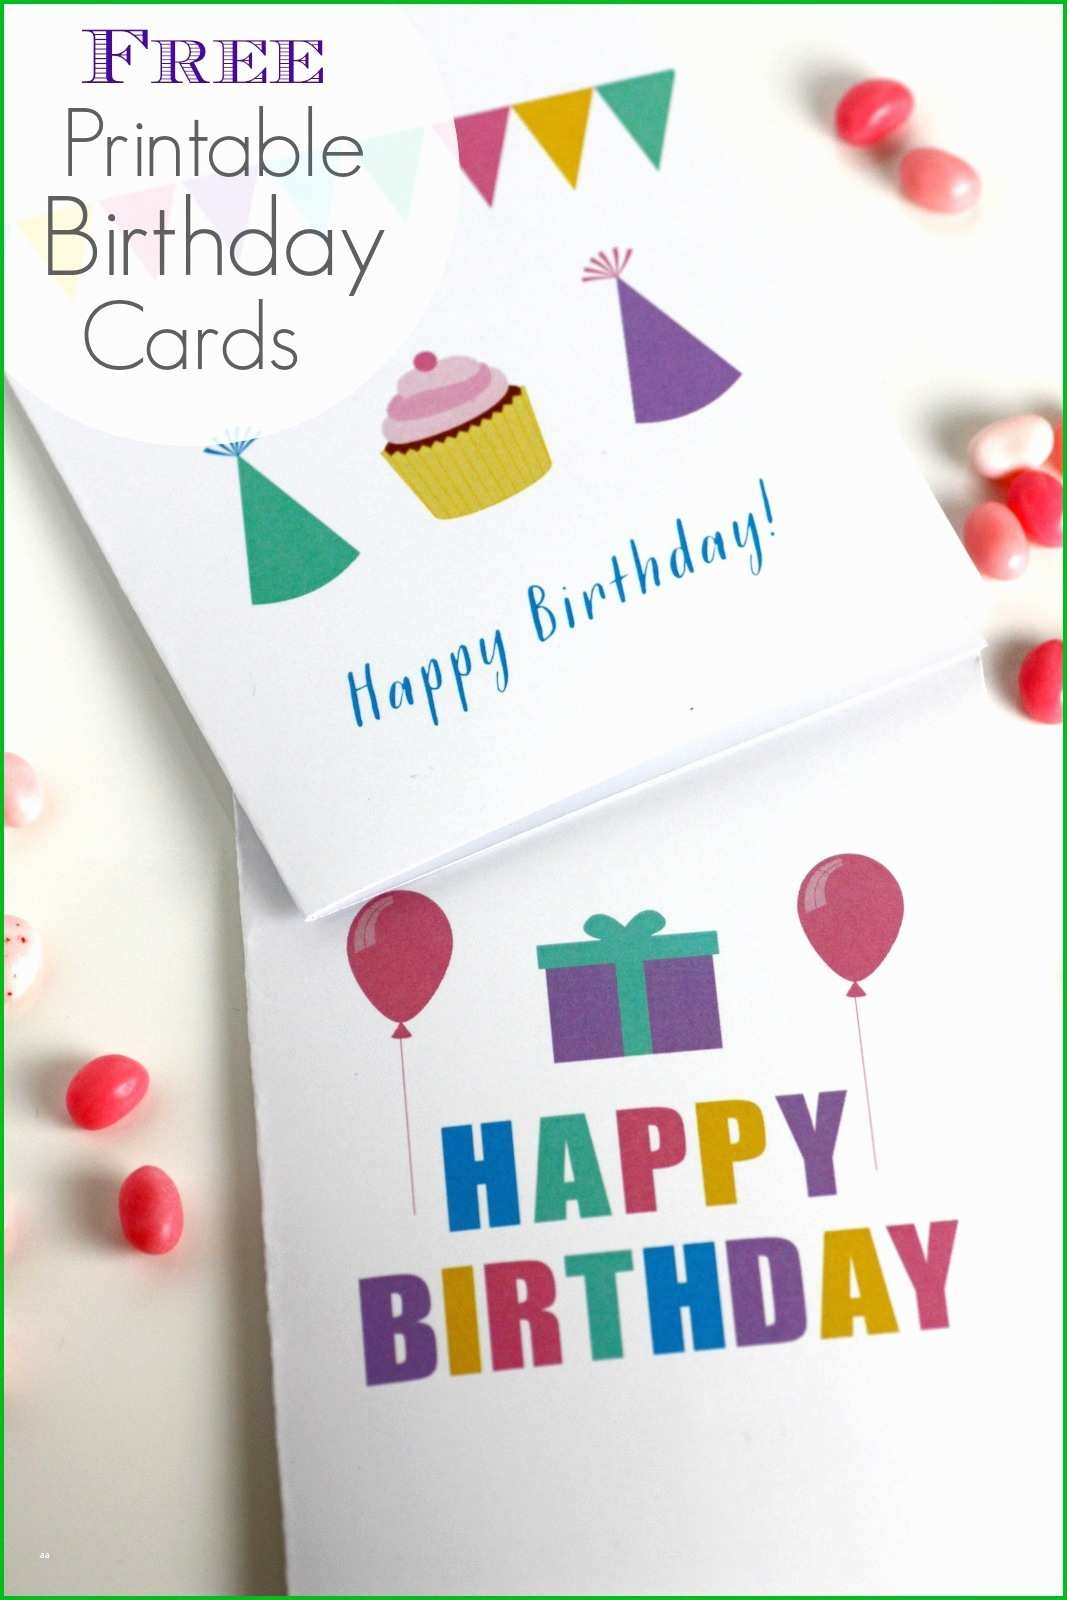 Free Printable Funny Birthday Cards For Adults   Free Printables - Free Printable Funny Birthday Cards For Adults